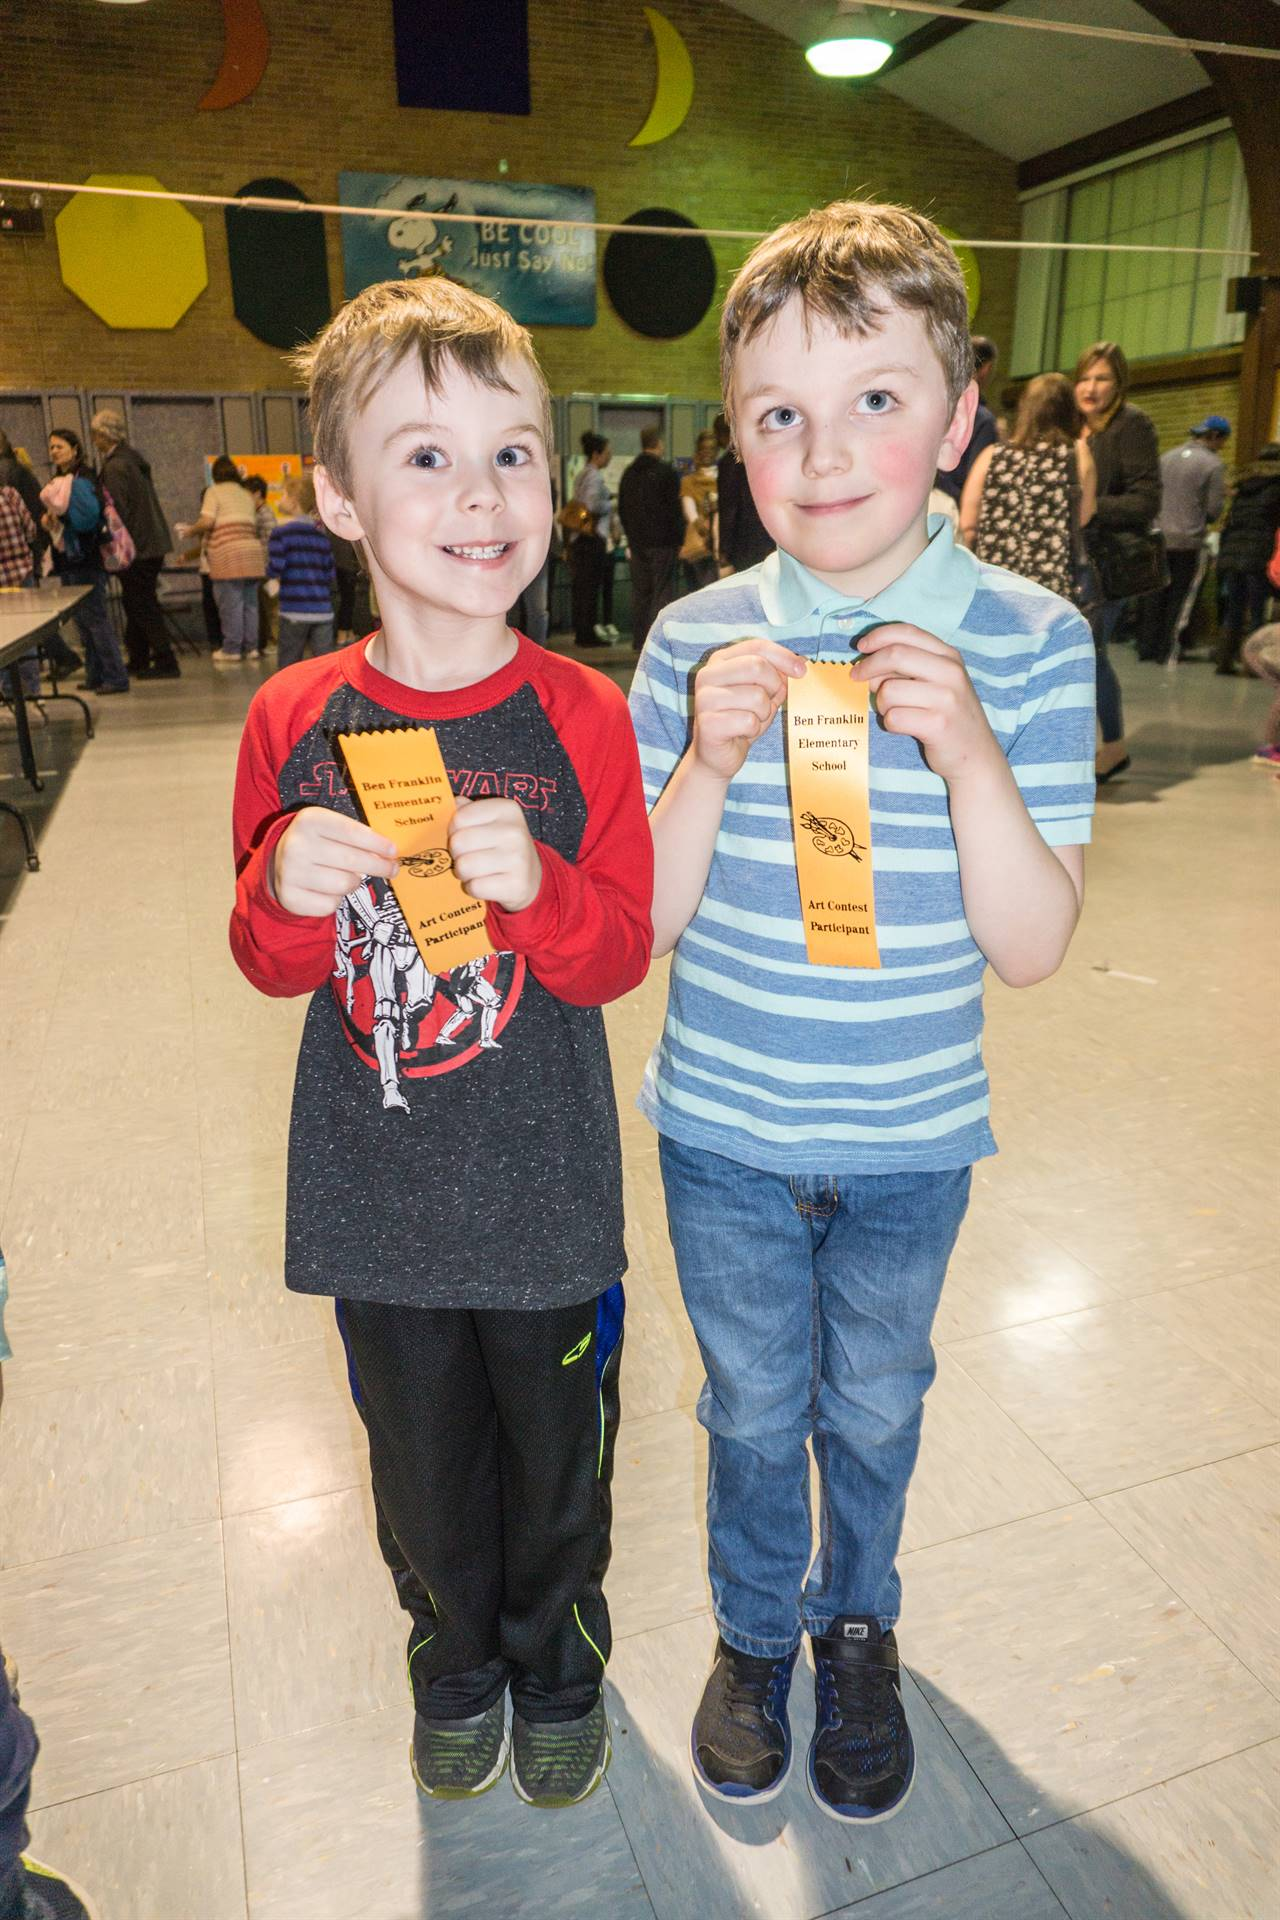 Students with their ribbons